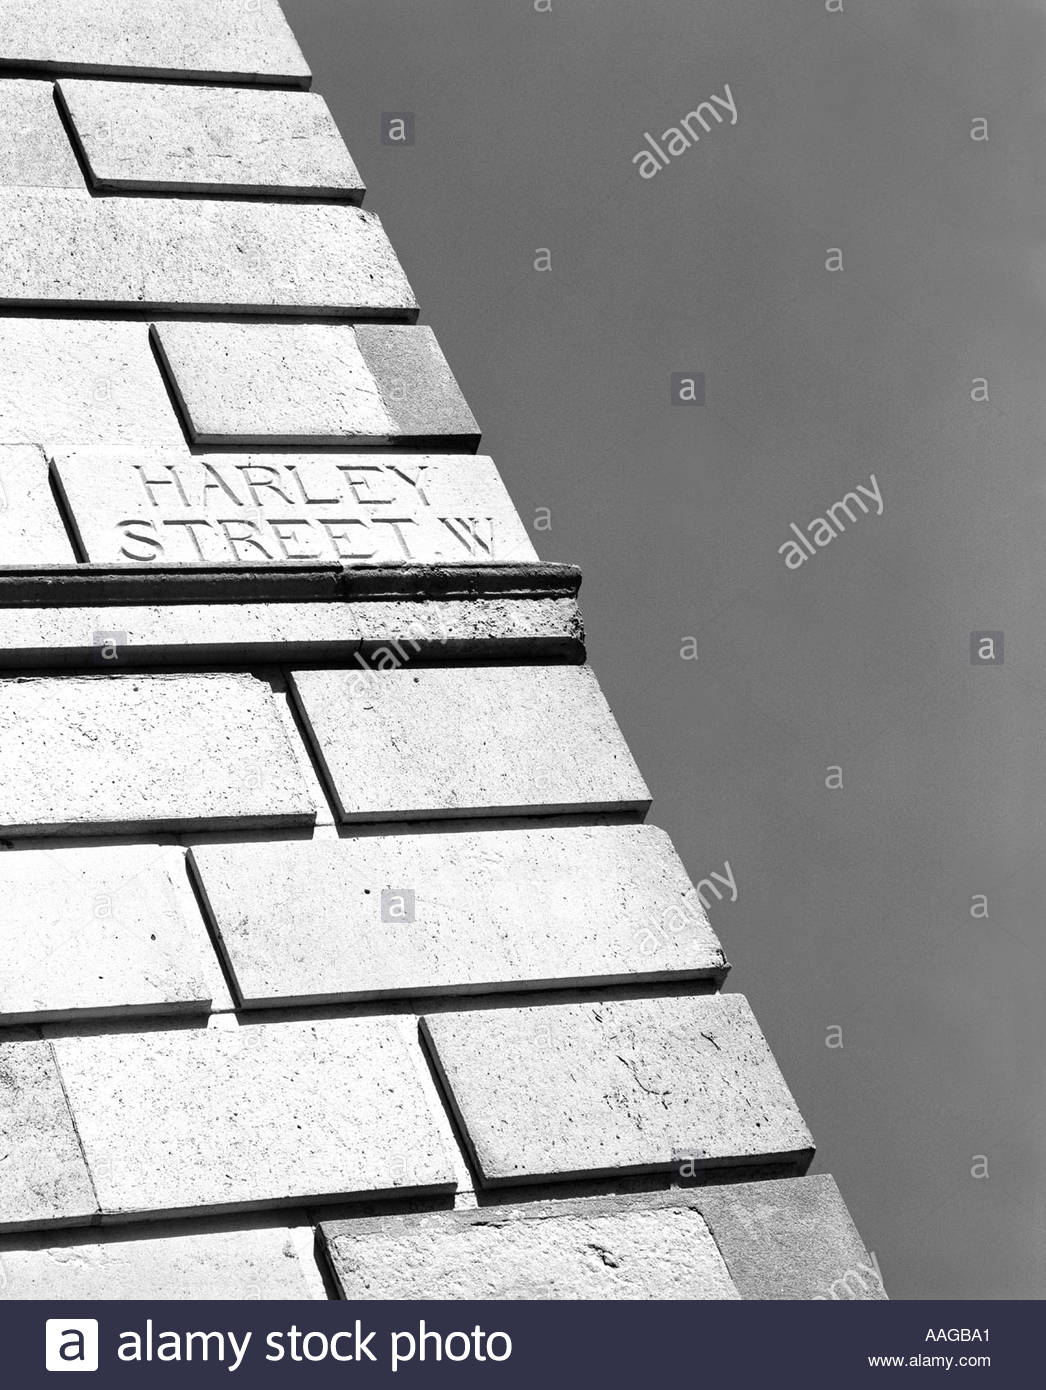 Harley street detail of street name carved in stone - Stock Image